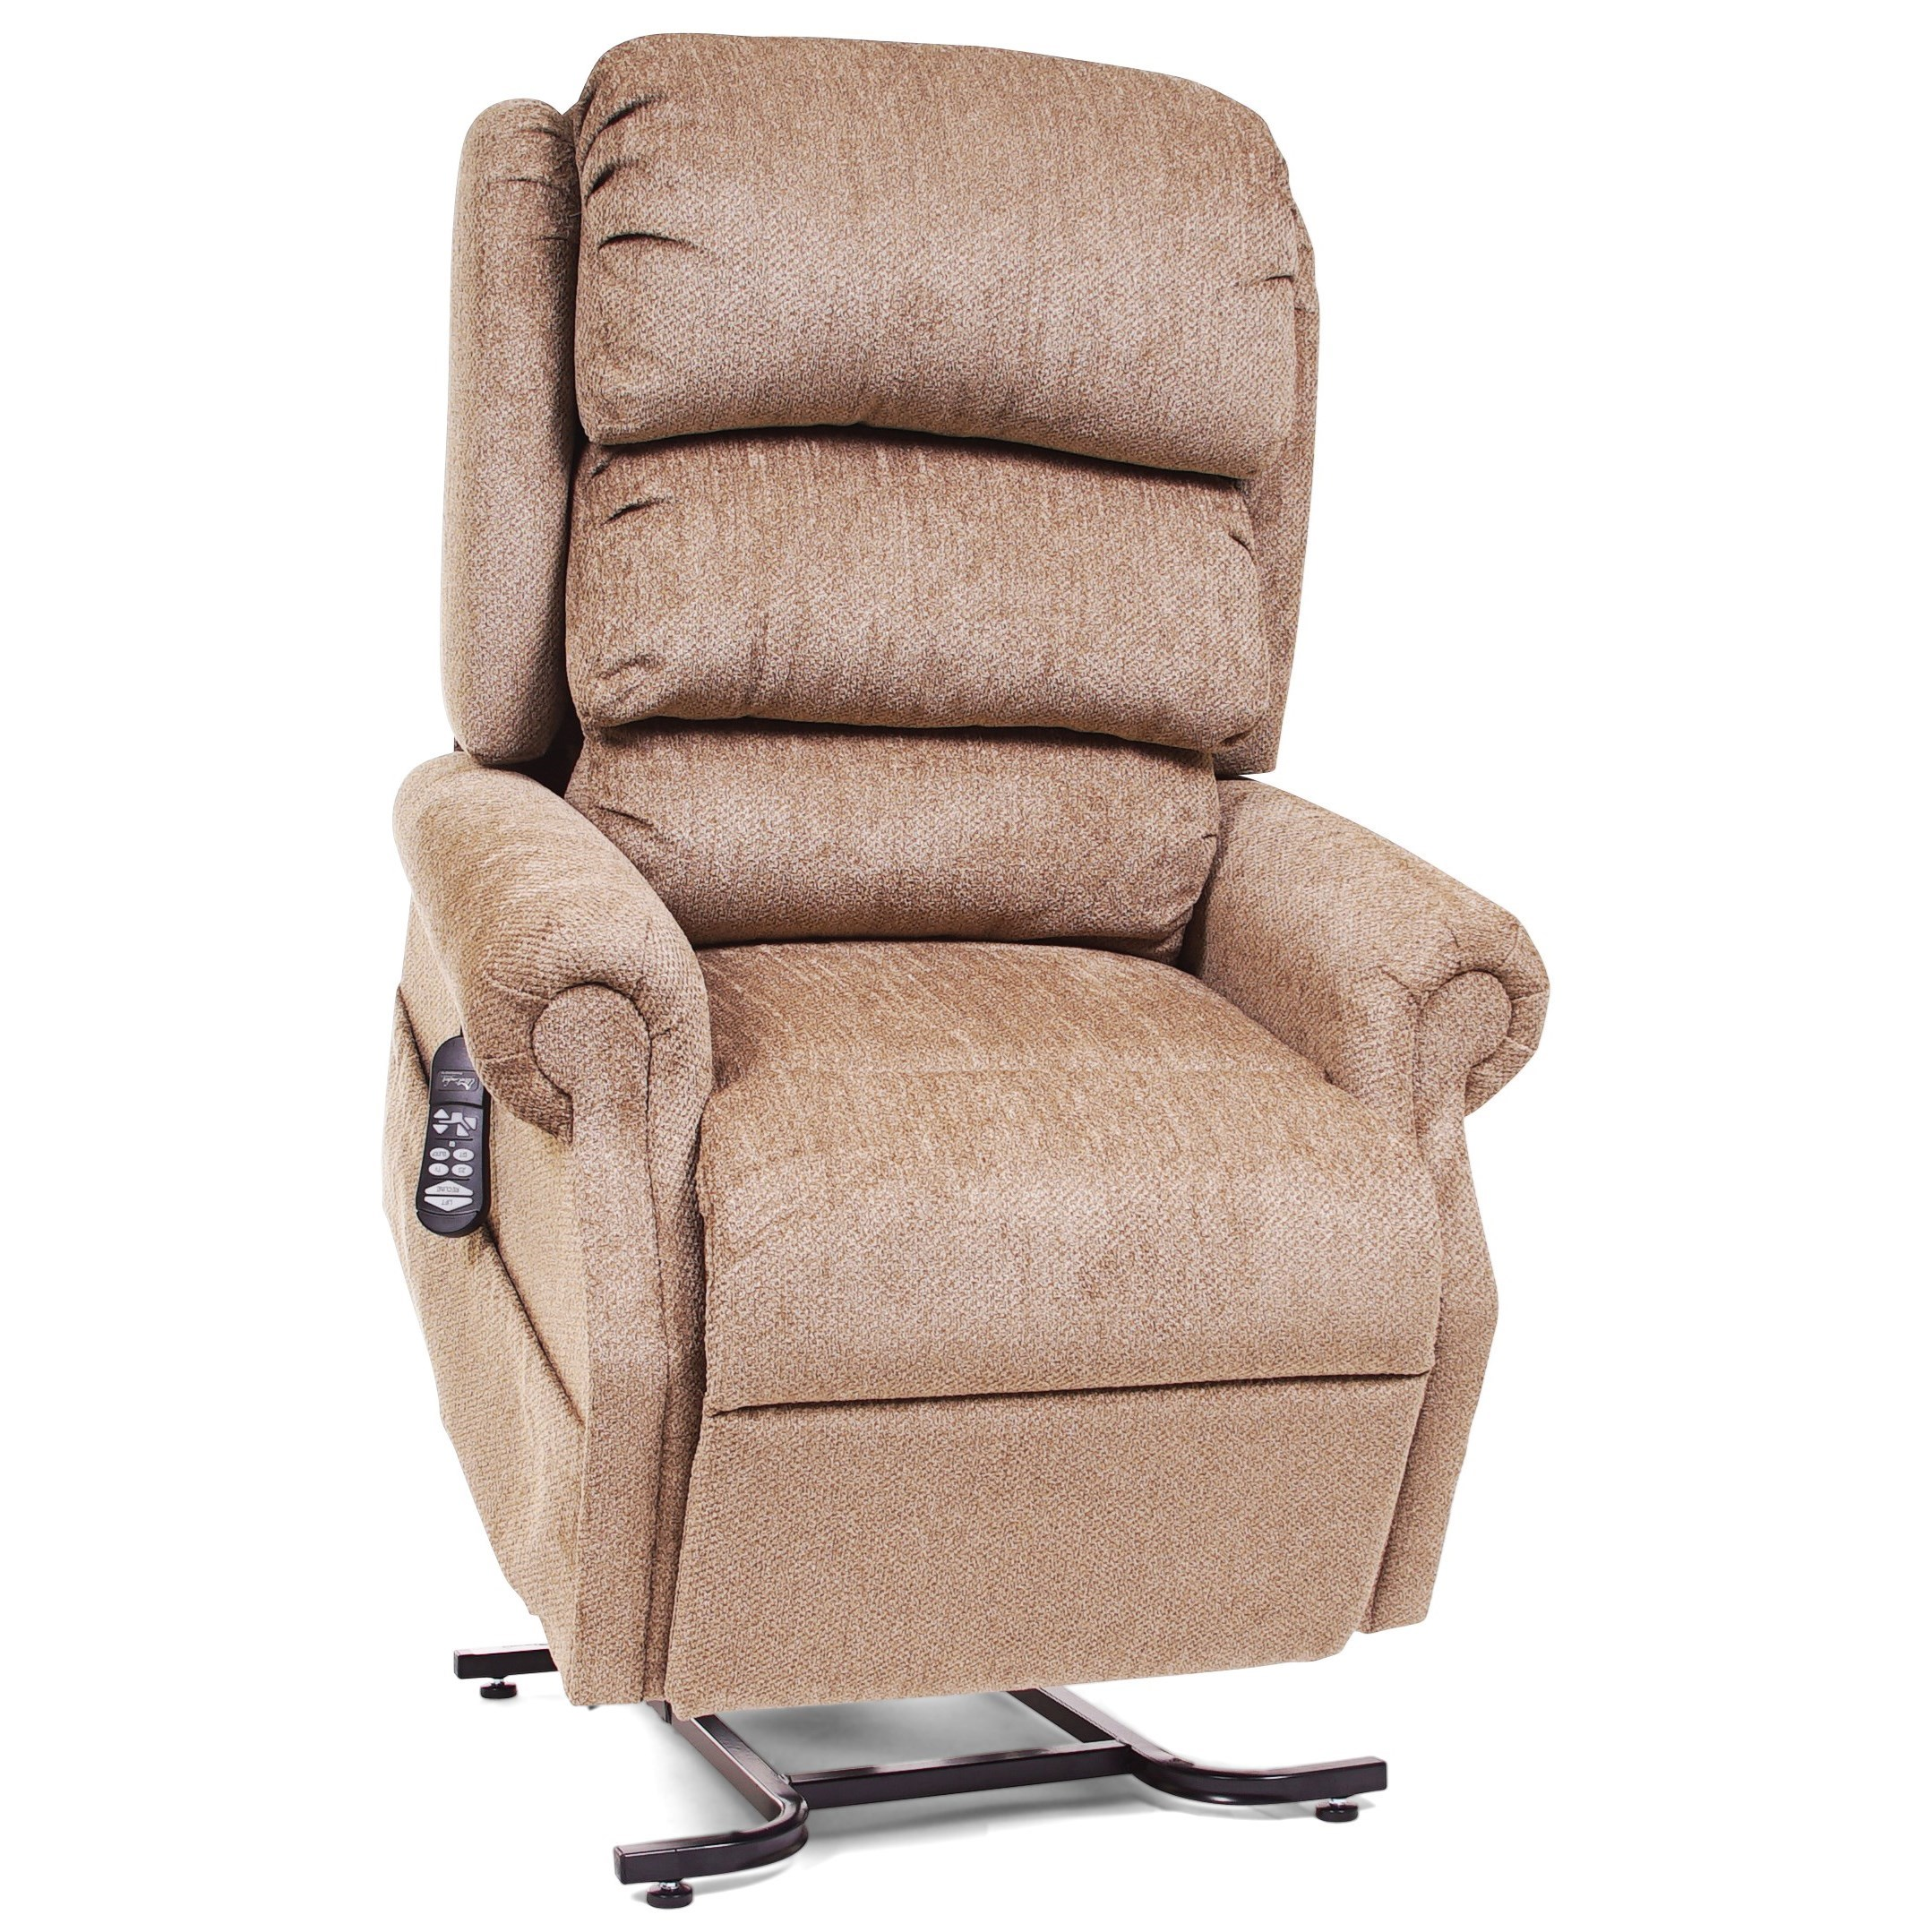 Astonishing Stellarcomfort Medium Power Lift Recliner By Ultracomfort At Gill Brothers Furniture Gmtry Best Dining Table And Chair Ideas Images Gmtryco